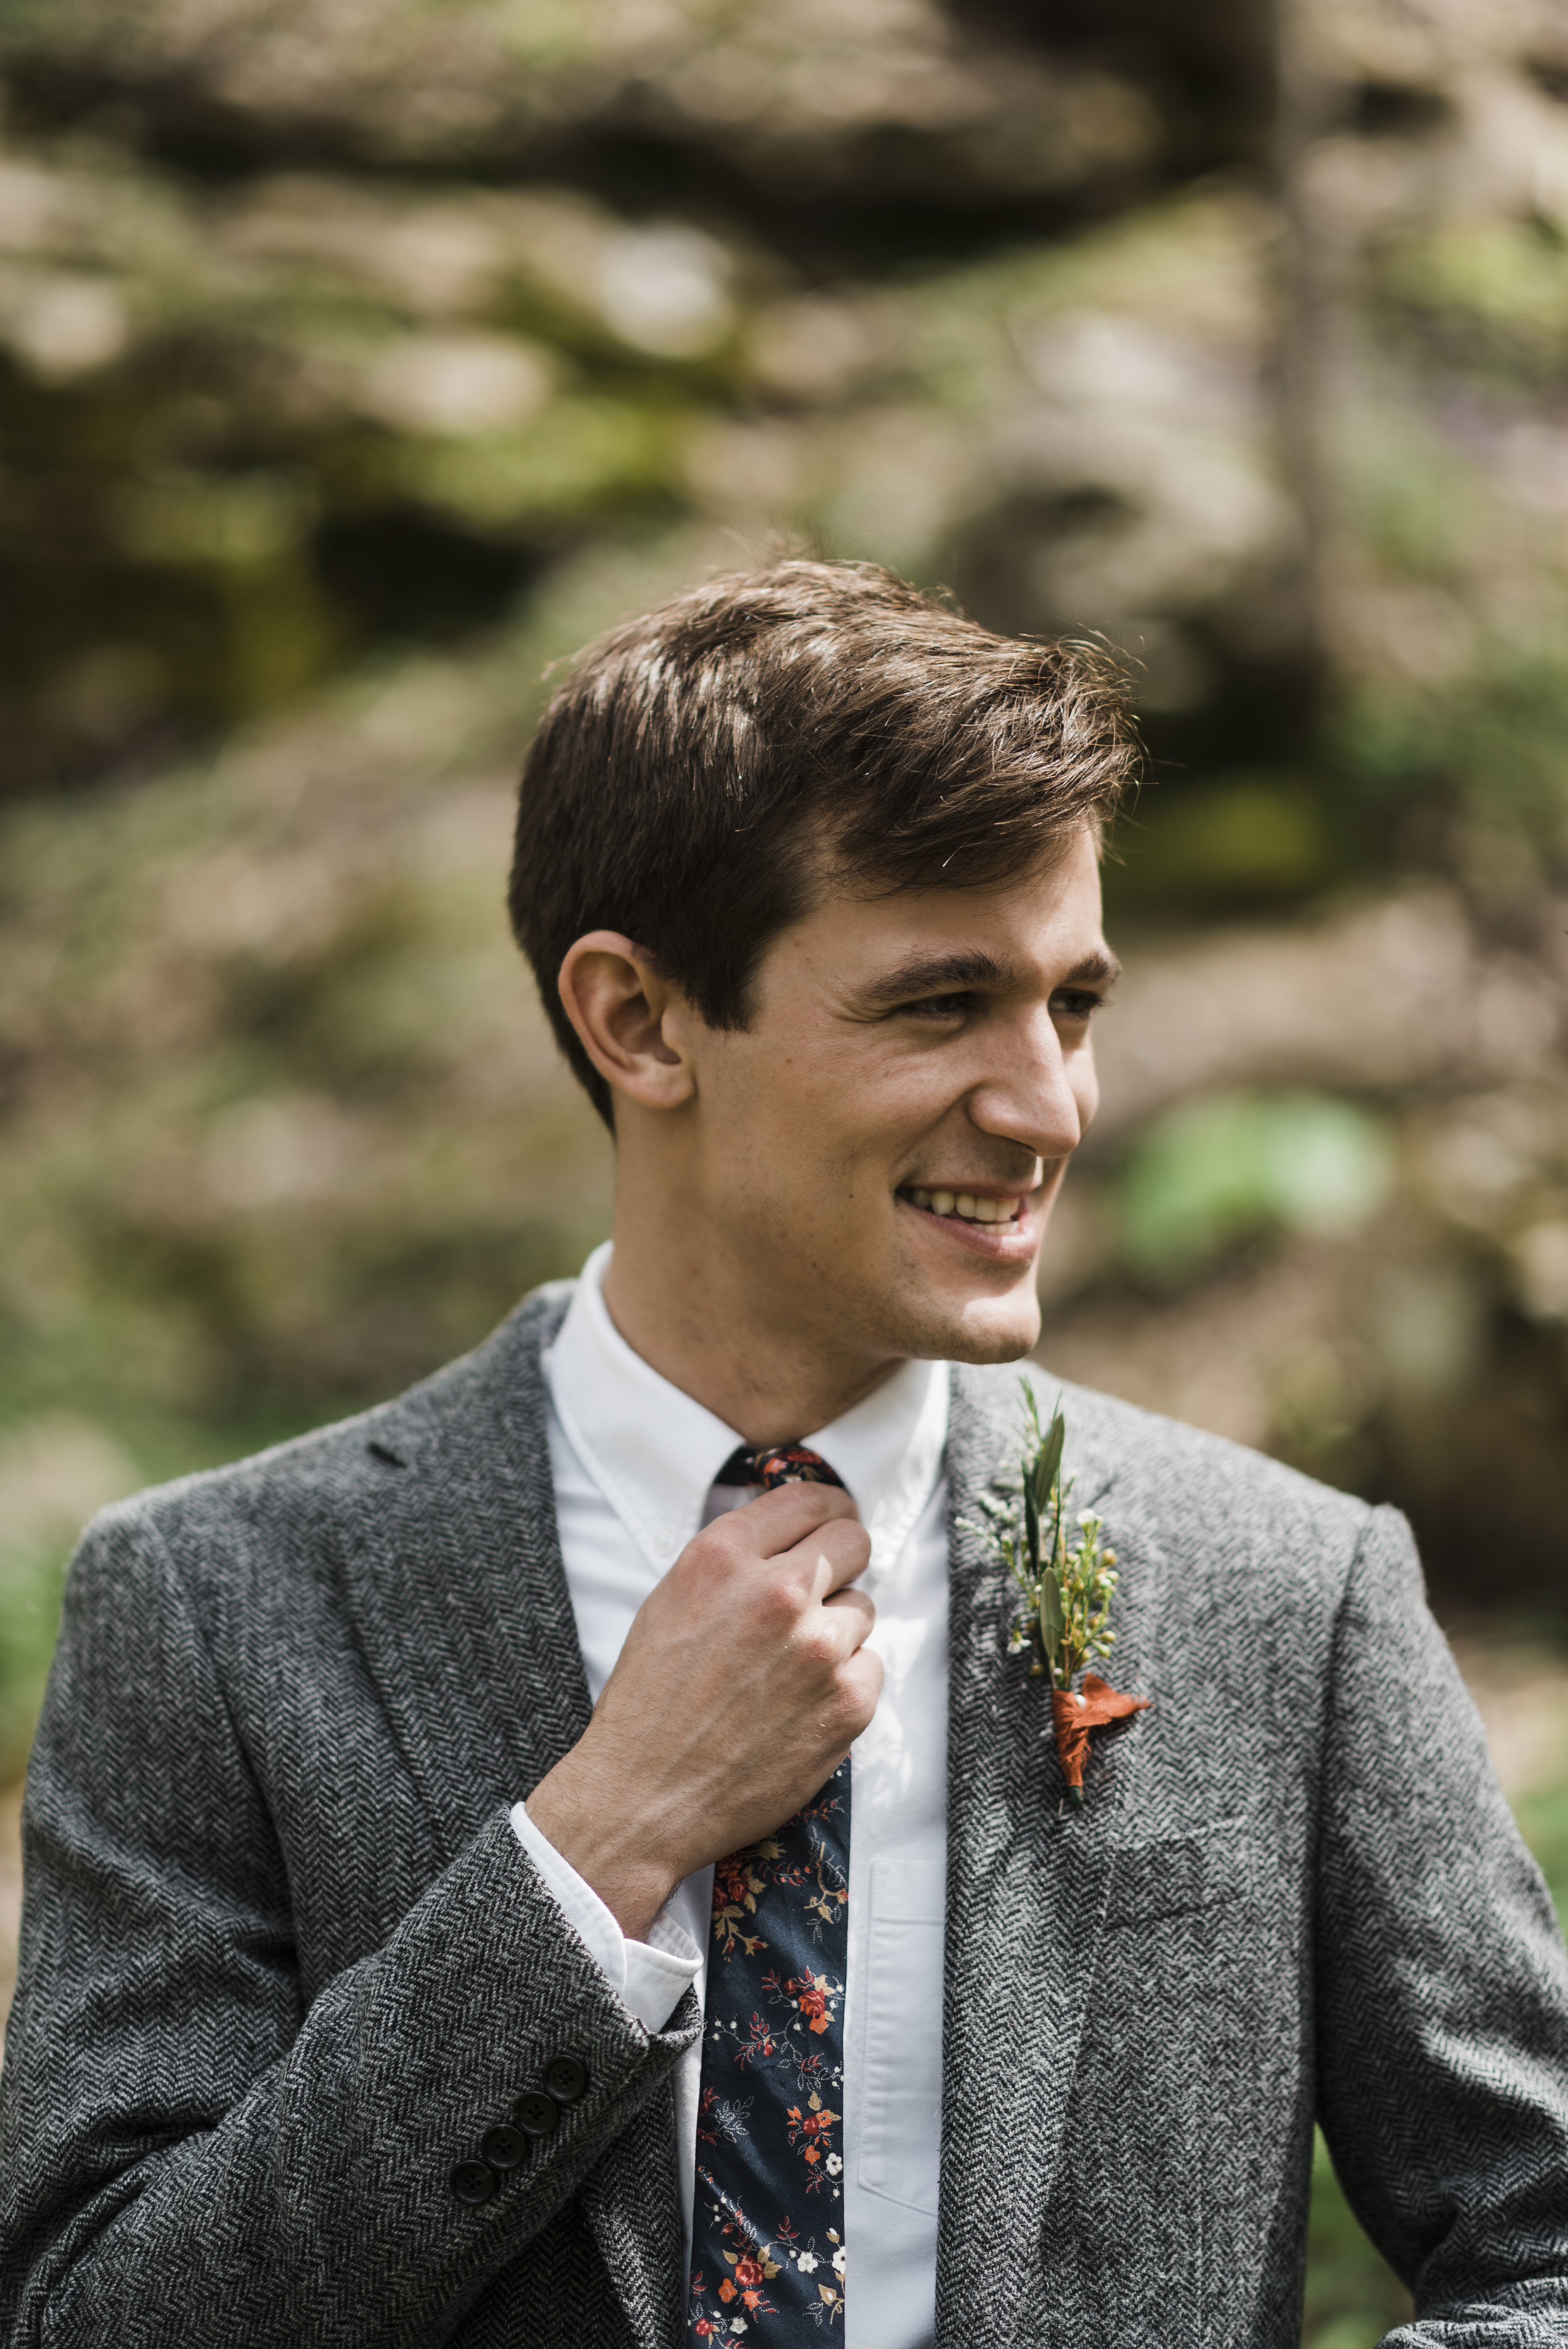 wedding groom tie chattanooga Tennessee forest